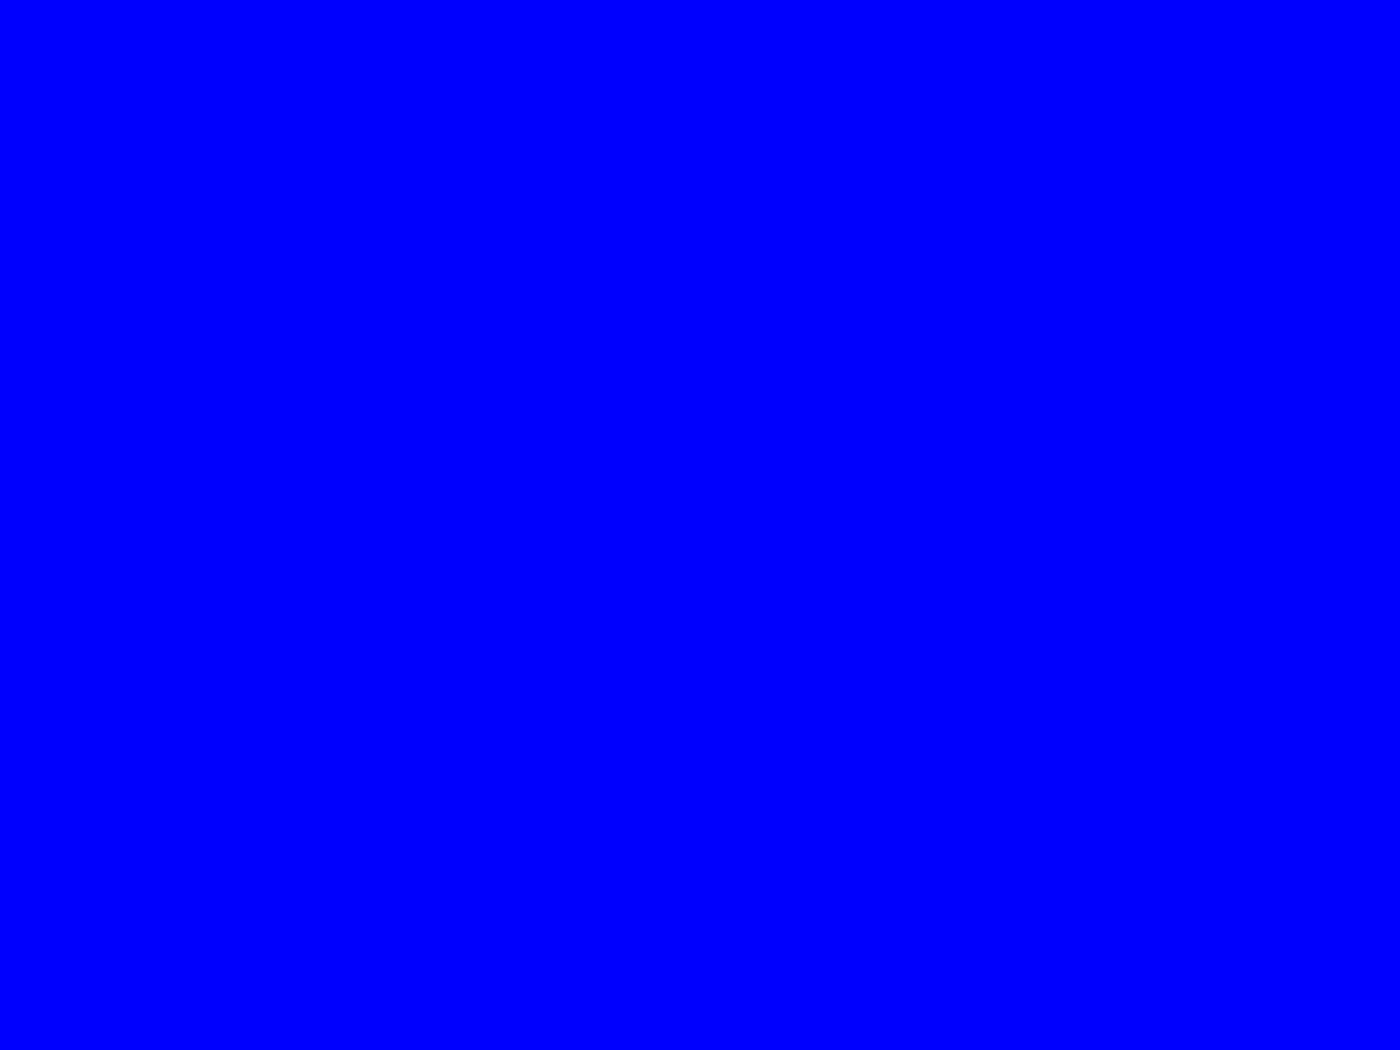 1400x1050 Blue Solid Color Background